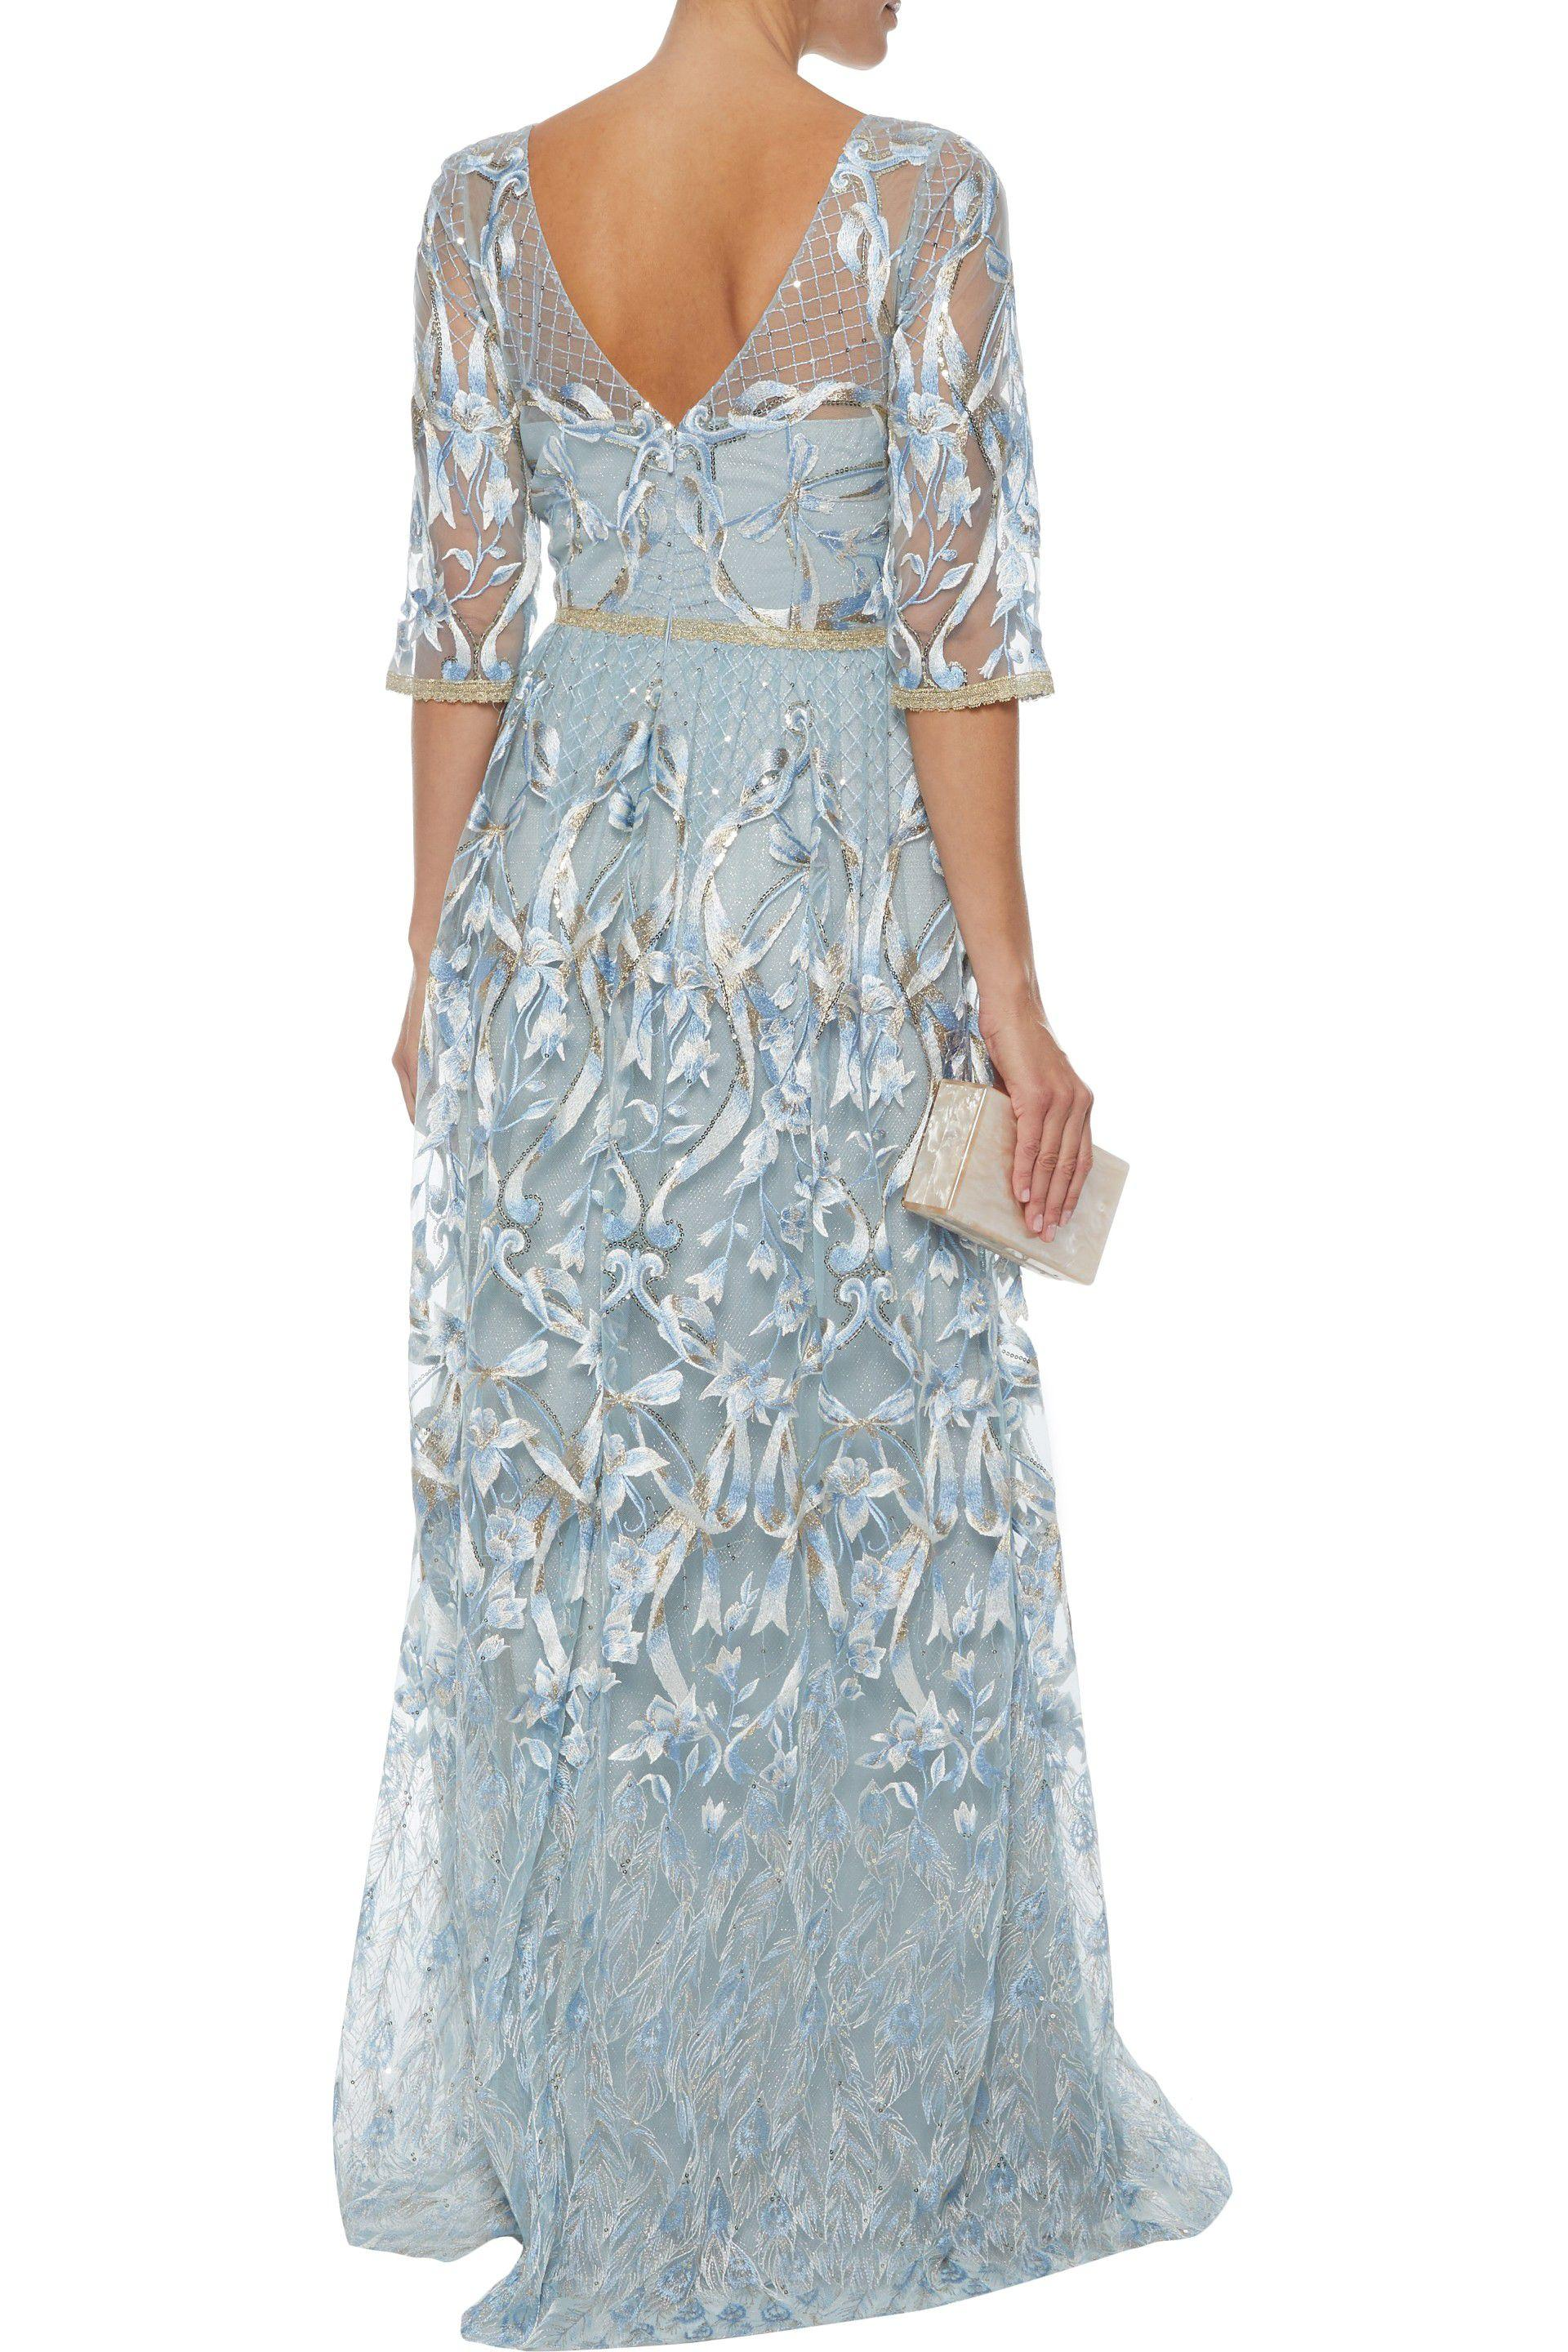 9e3f2a59 Marchesa notte Woman Sequin-embellished Metallic Embroidered Tulle ...